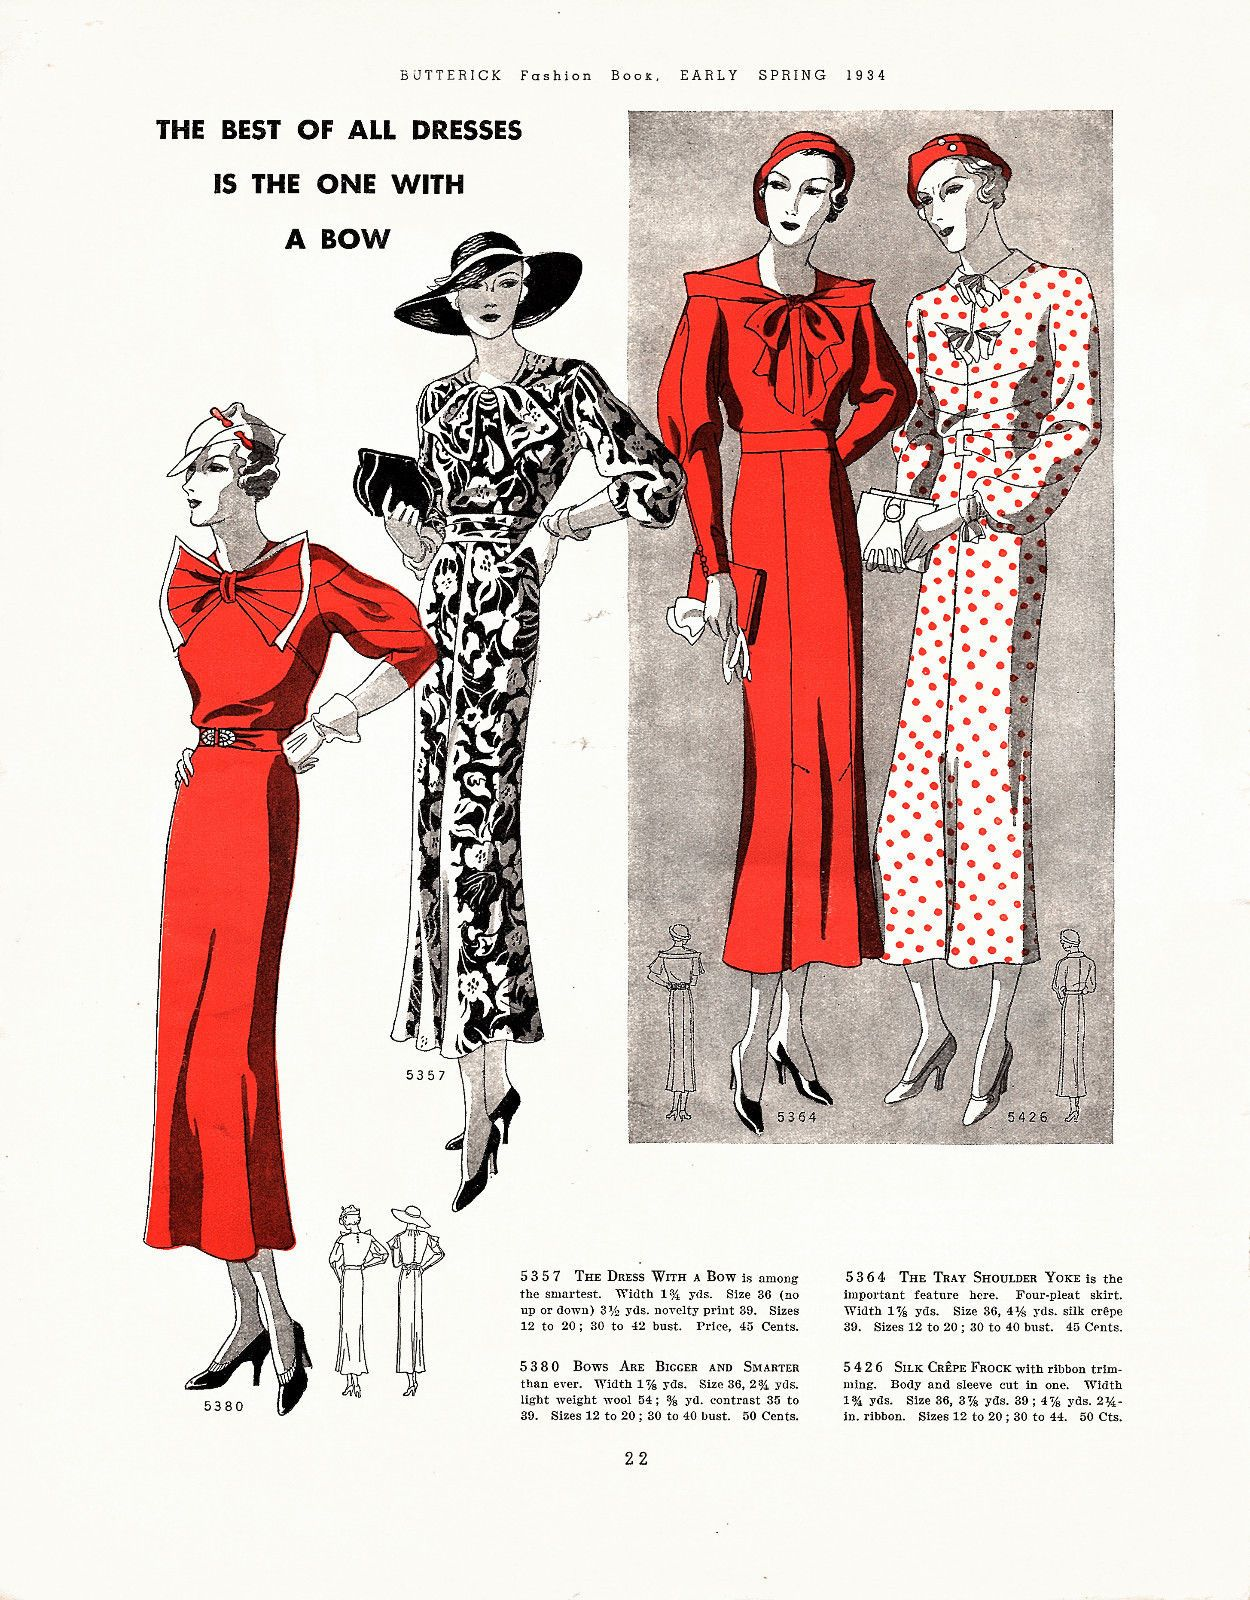 dc6f94f28726ba Butterick Fashion Book, Early Spring 1934 featuring Butterick 5380, 5357,  5364 and 5426